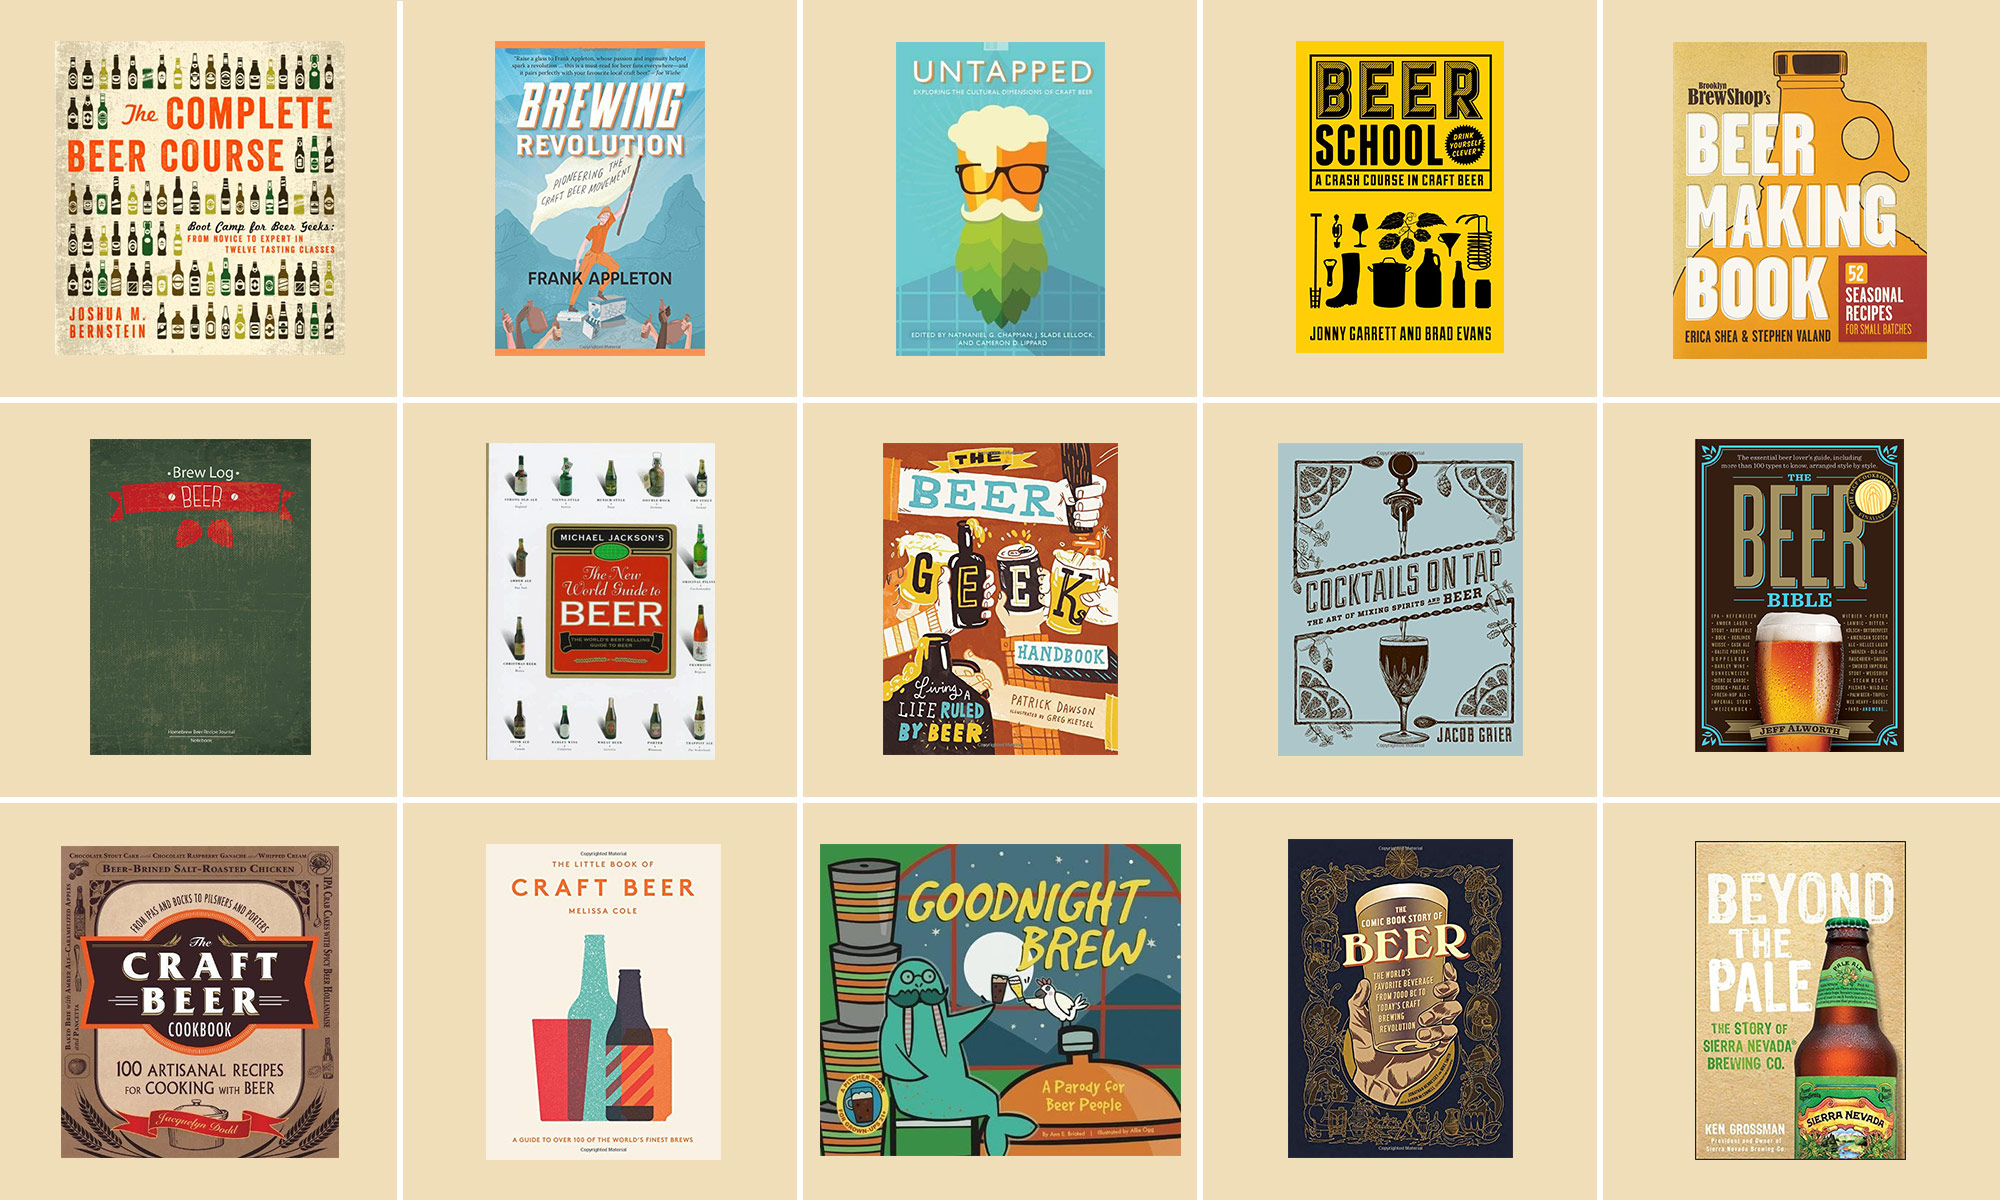 We Rounded Up The 15 Best Beer Books